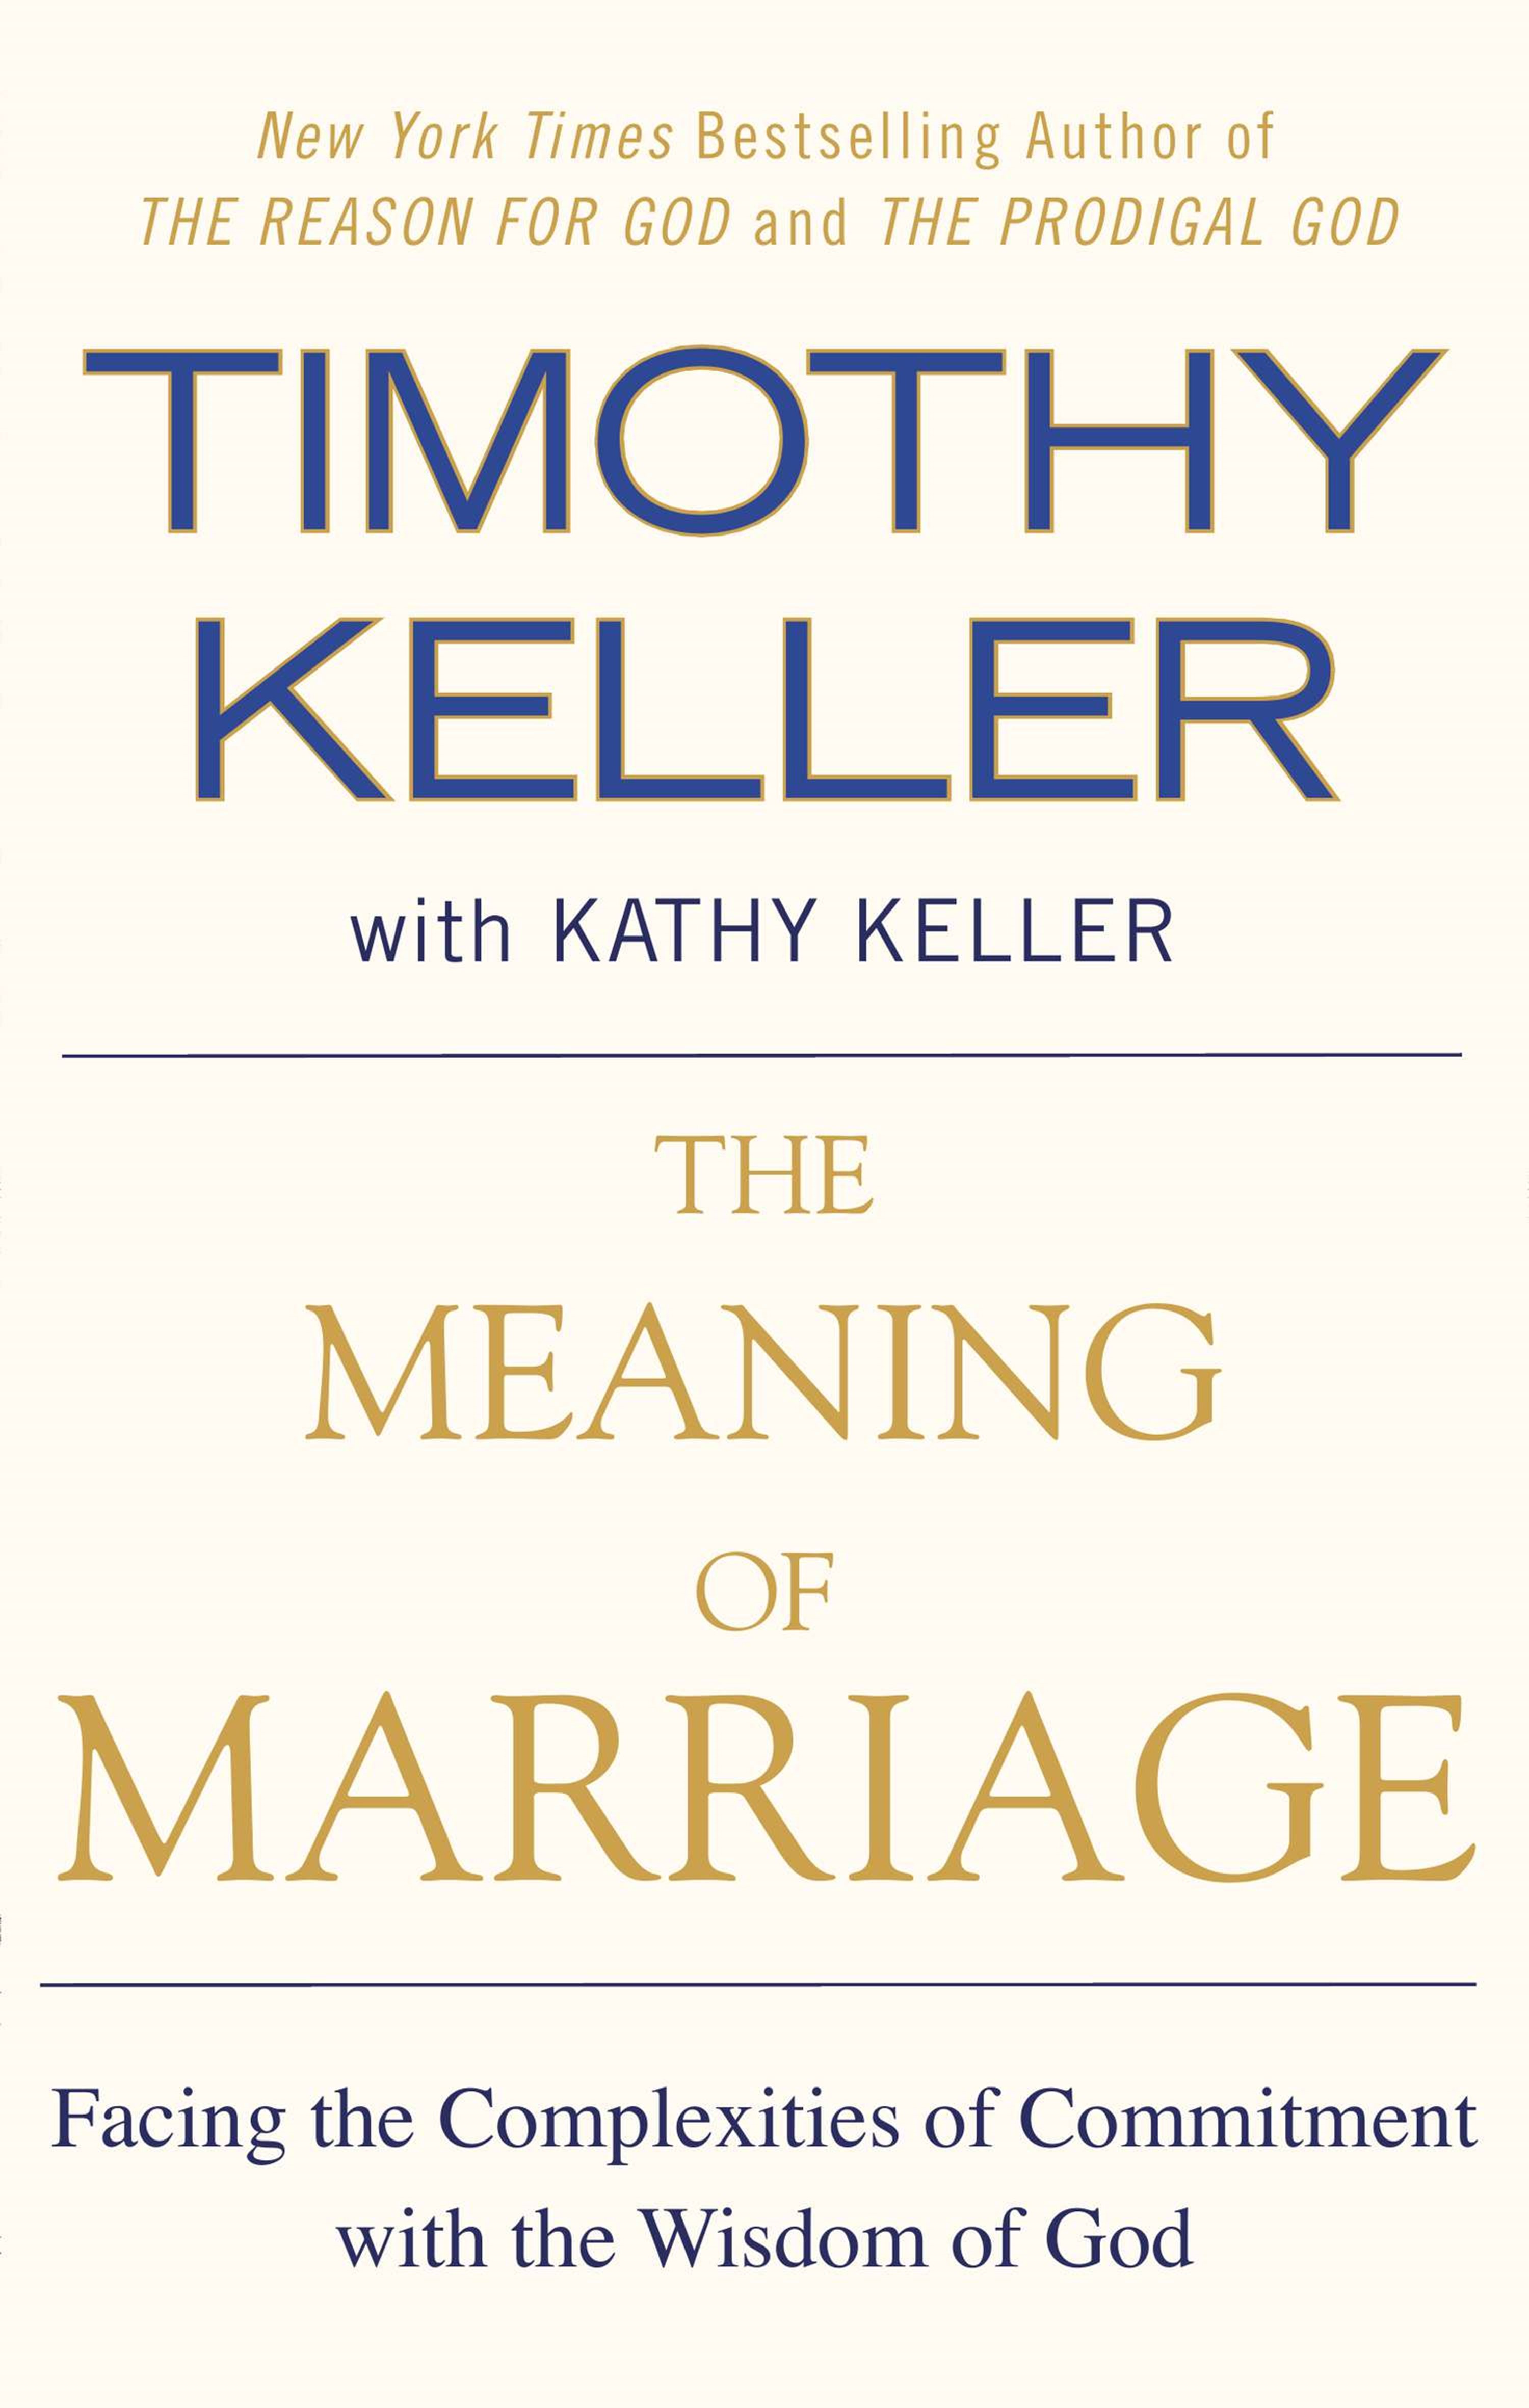 The Meaning of Marriage | Todays Christian Woman